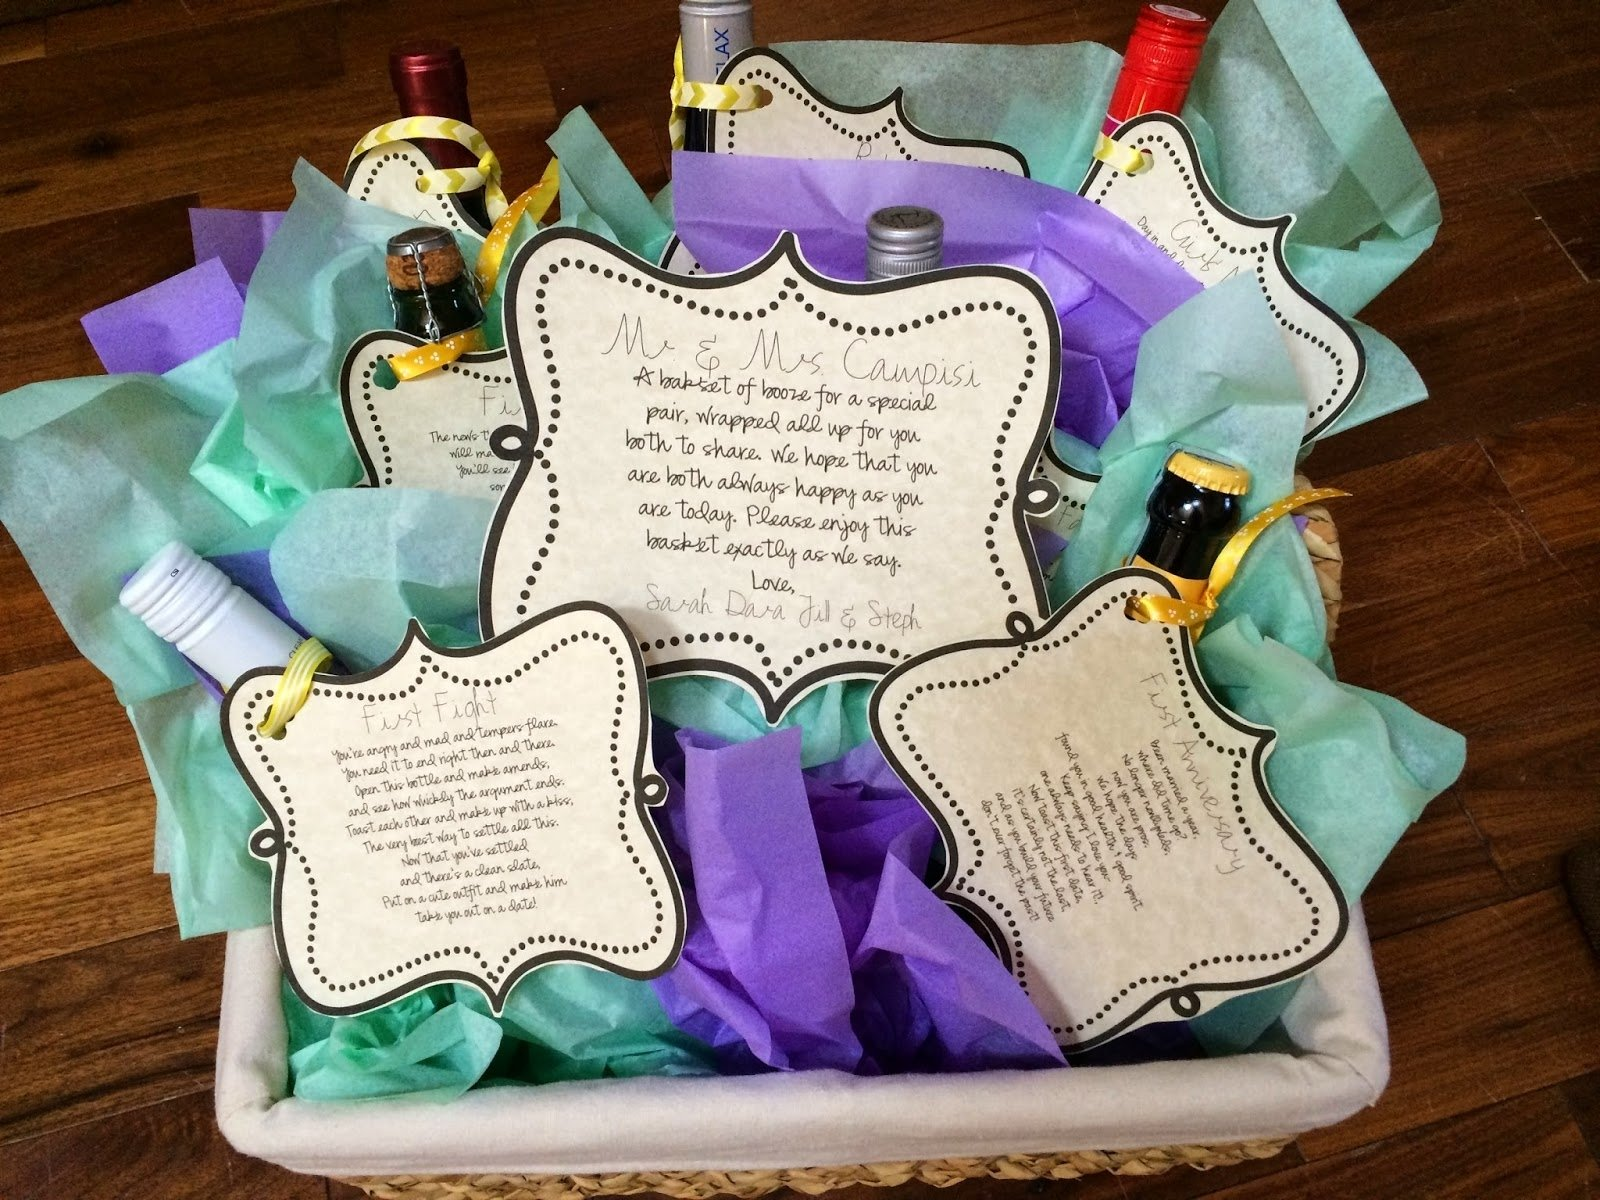 10 Gorgeous Stock The Bar Party Gift Ideas shower the people you love with love the eager teacher 1 2021